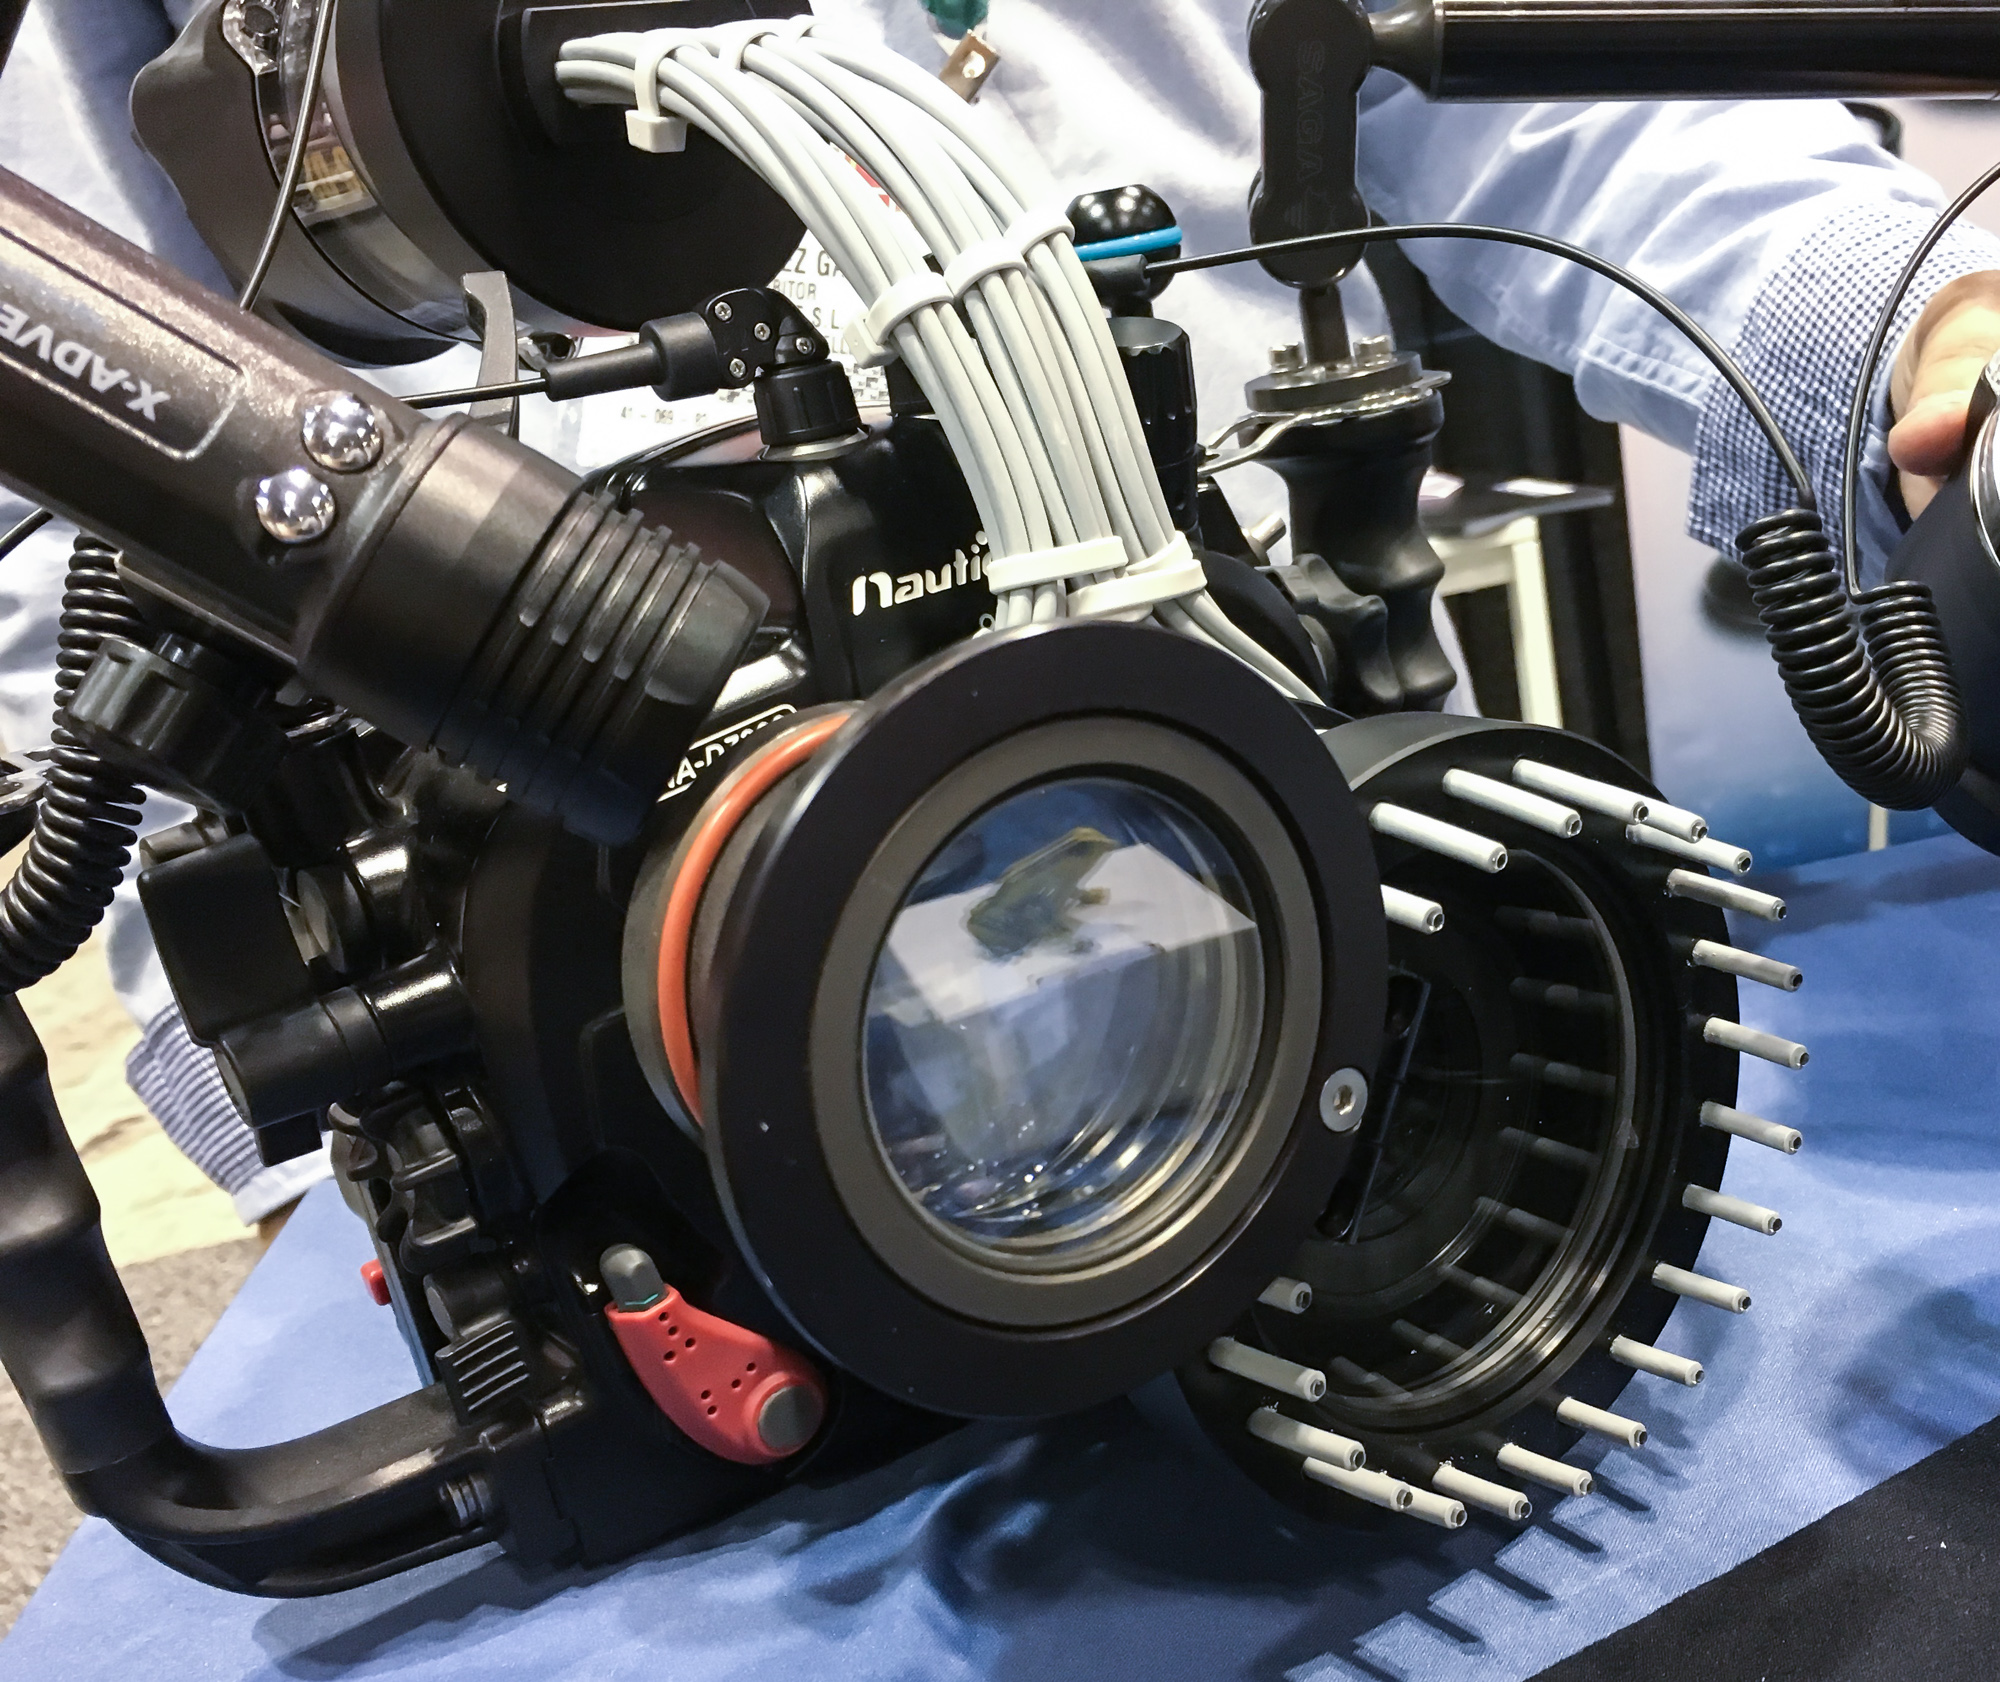 The Saga Dive ring flash system can be disengaged and slid back, and also is compatible with a wet diopter, which can be flipped out of the way if desired